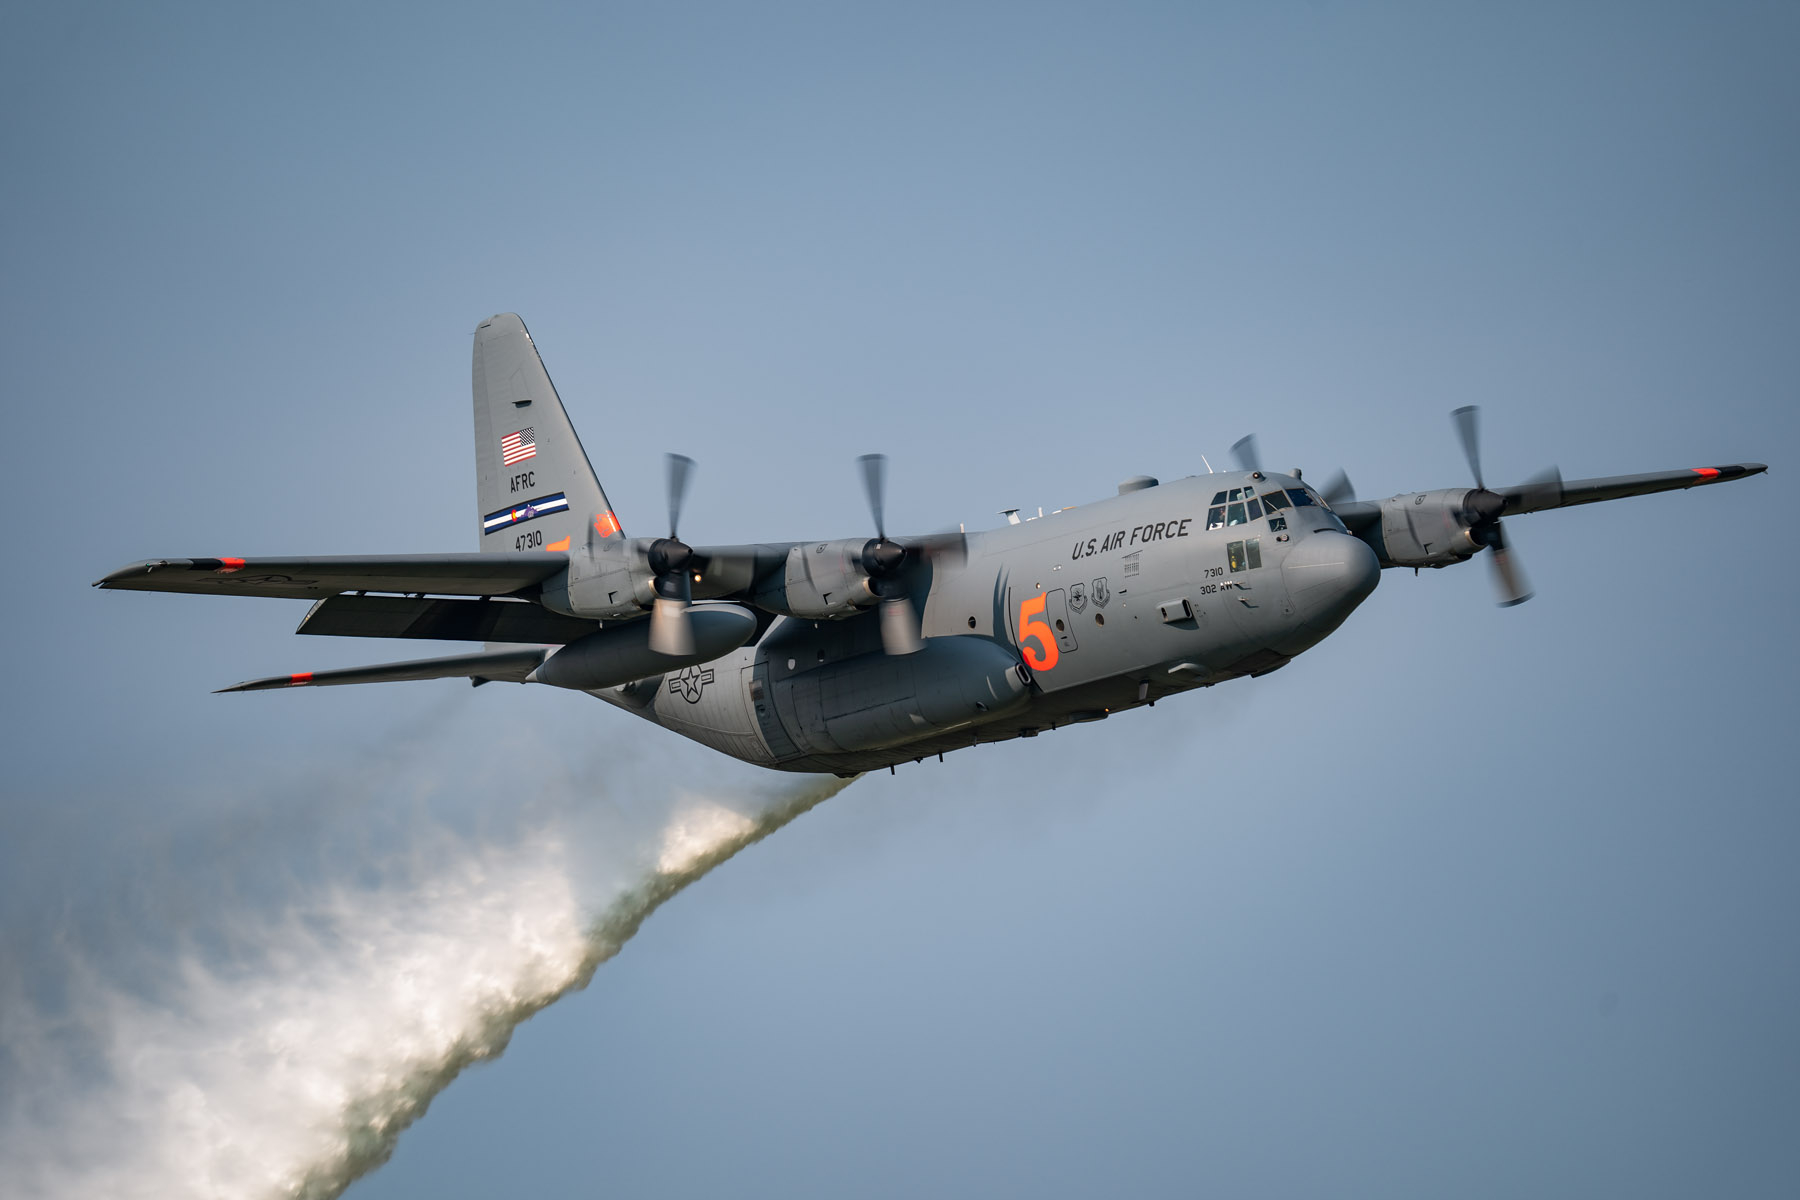 C-130 Fire Fighter